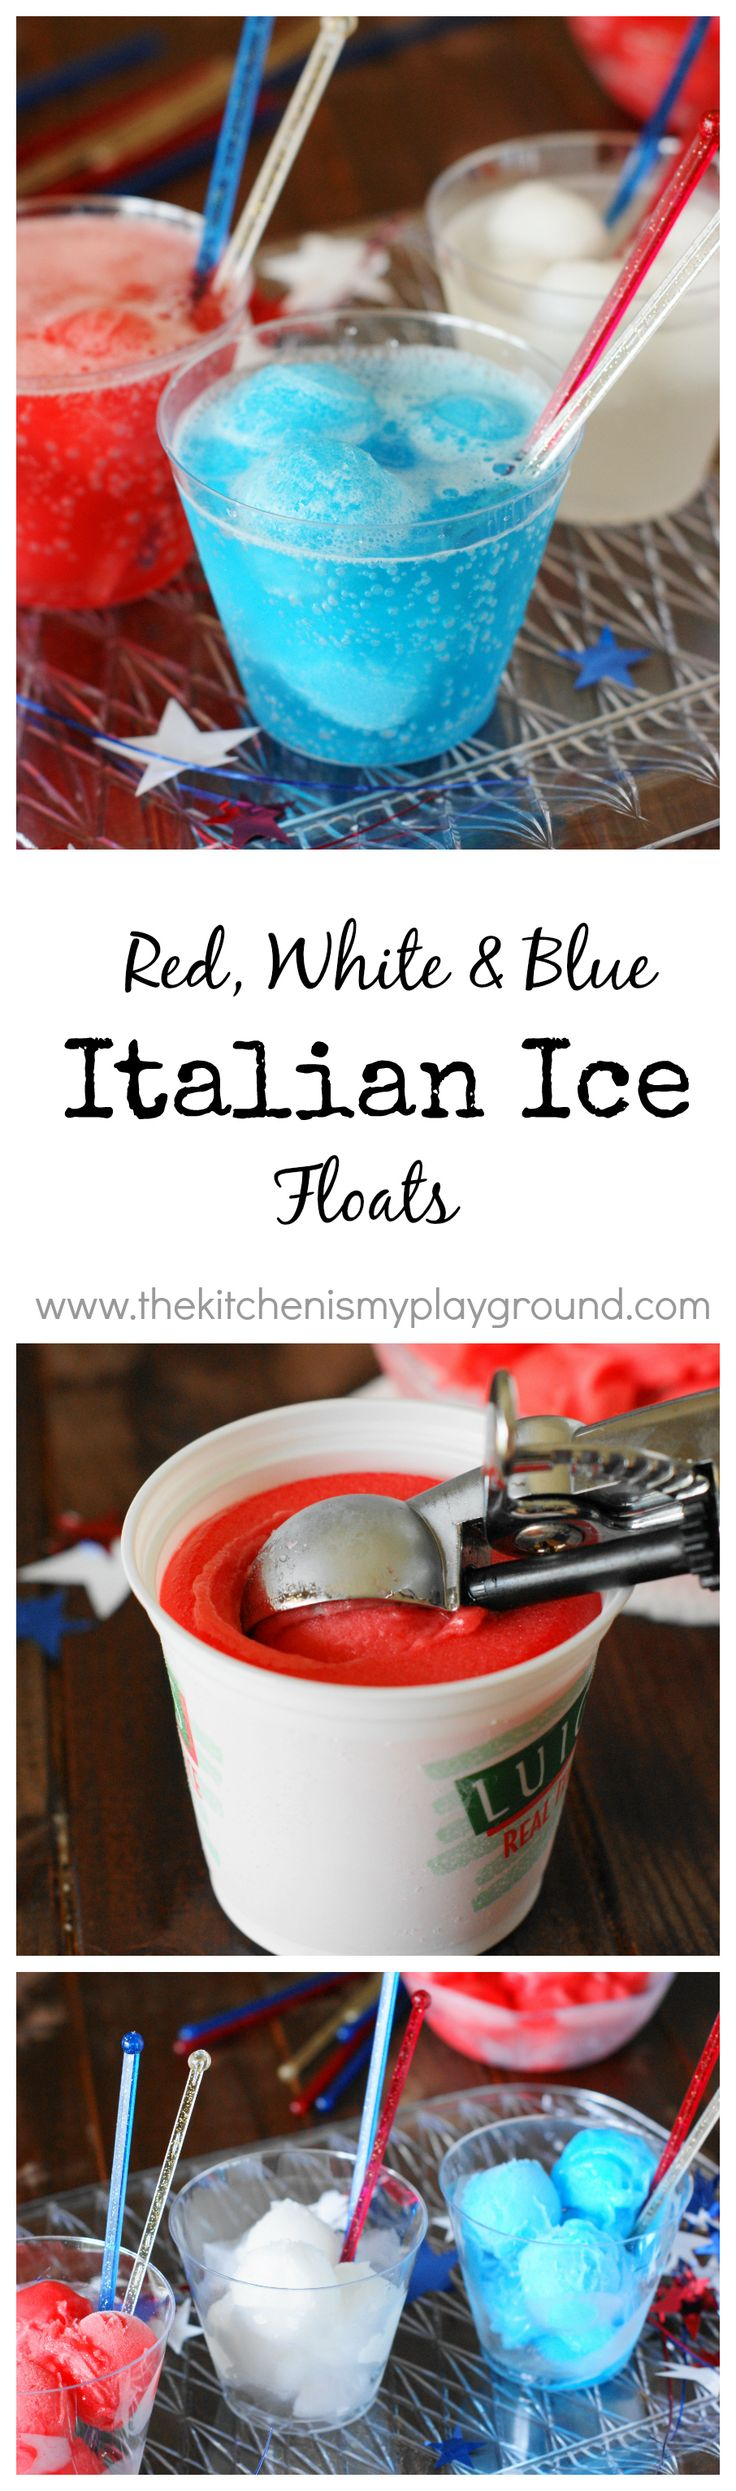 Red, White & Blue Italian Ice Floats ~ an easy & fun treat for the kiddos {and grown-ups, too}! www.thekitchenismyplayground.com